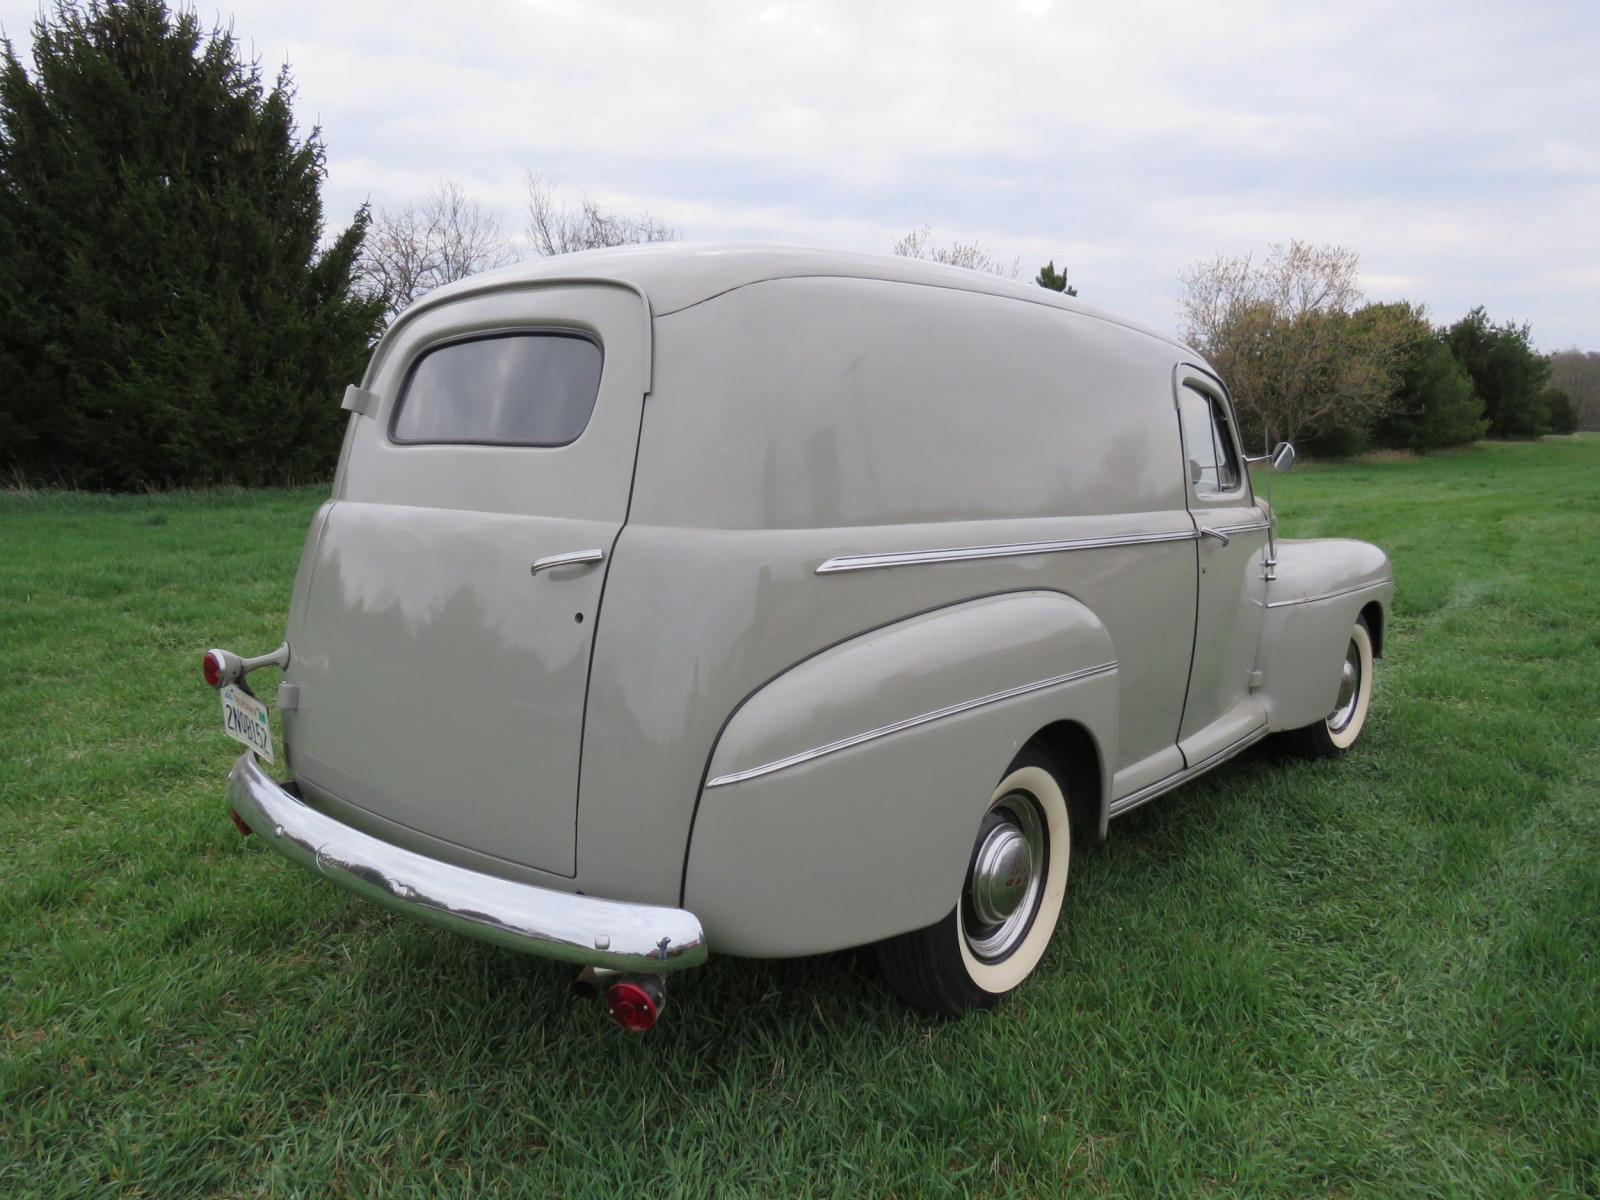 1946 Ford Sedan Delivery - Image 7